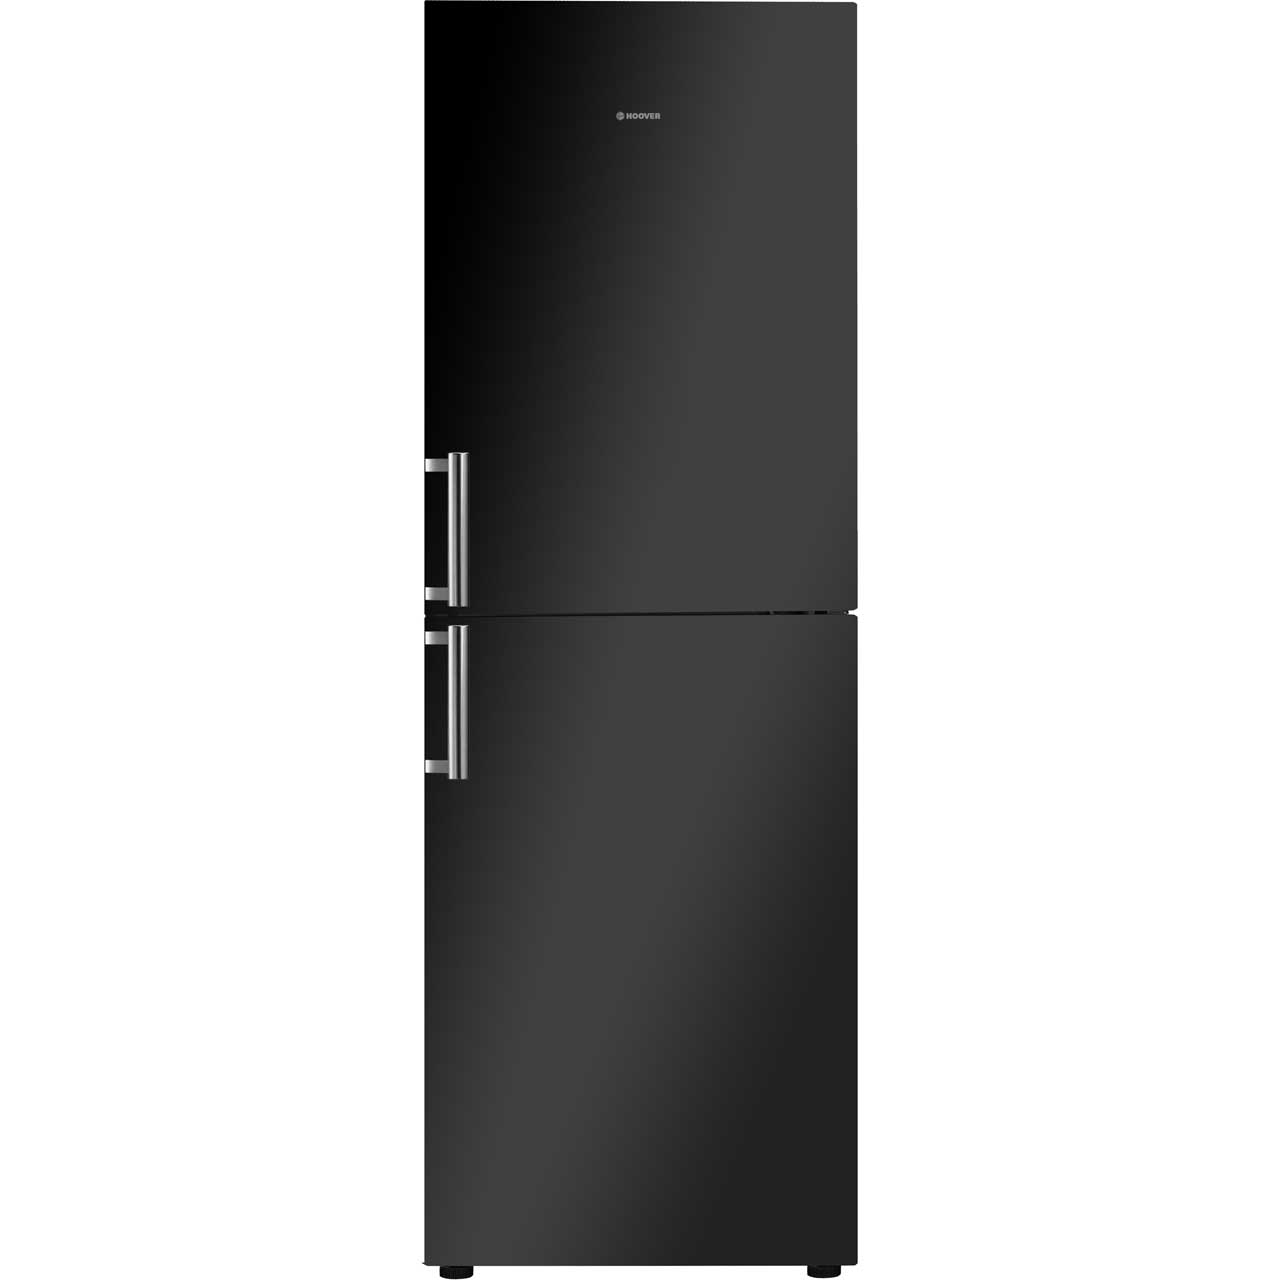 Hoover HVBN6182BHK Free Standing Fridge Freezer Frost Free in Black